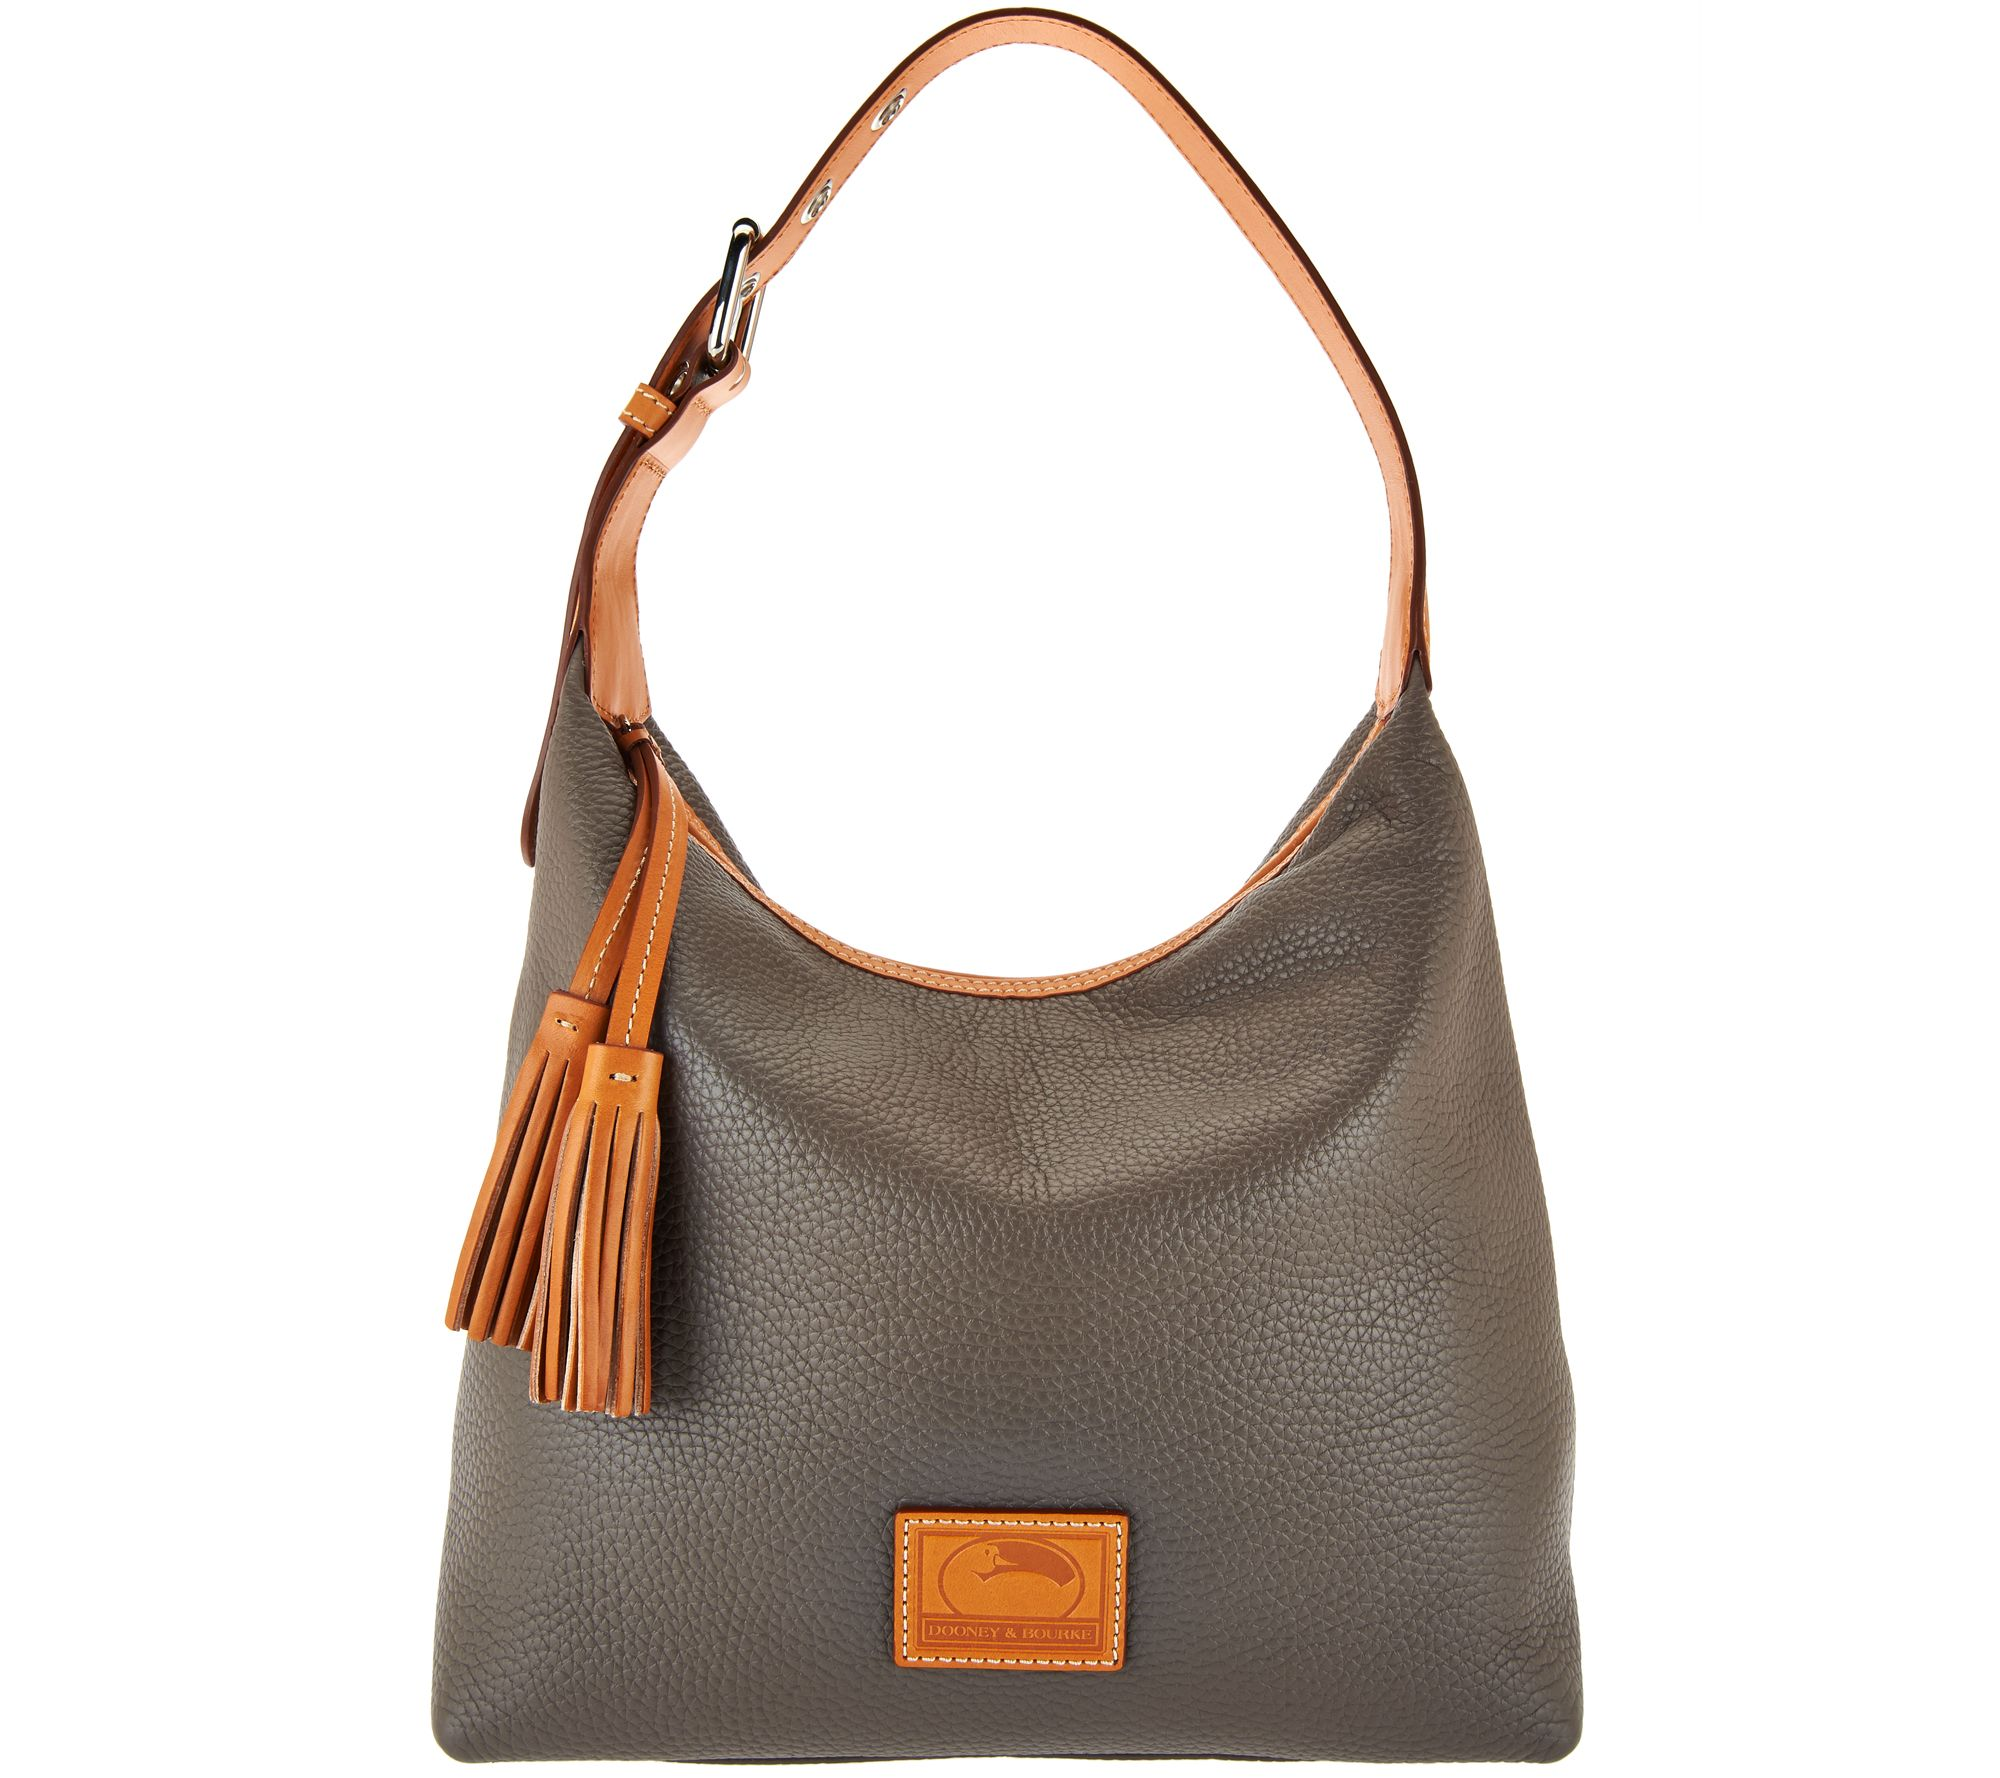 Wear The hobo bag and get a new look